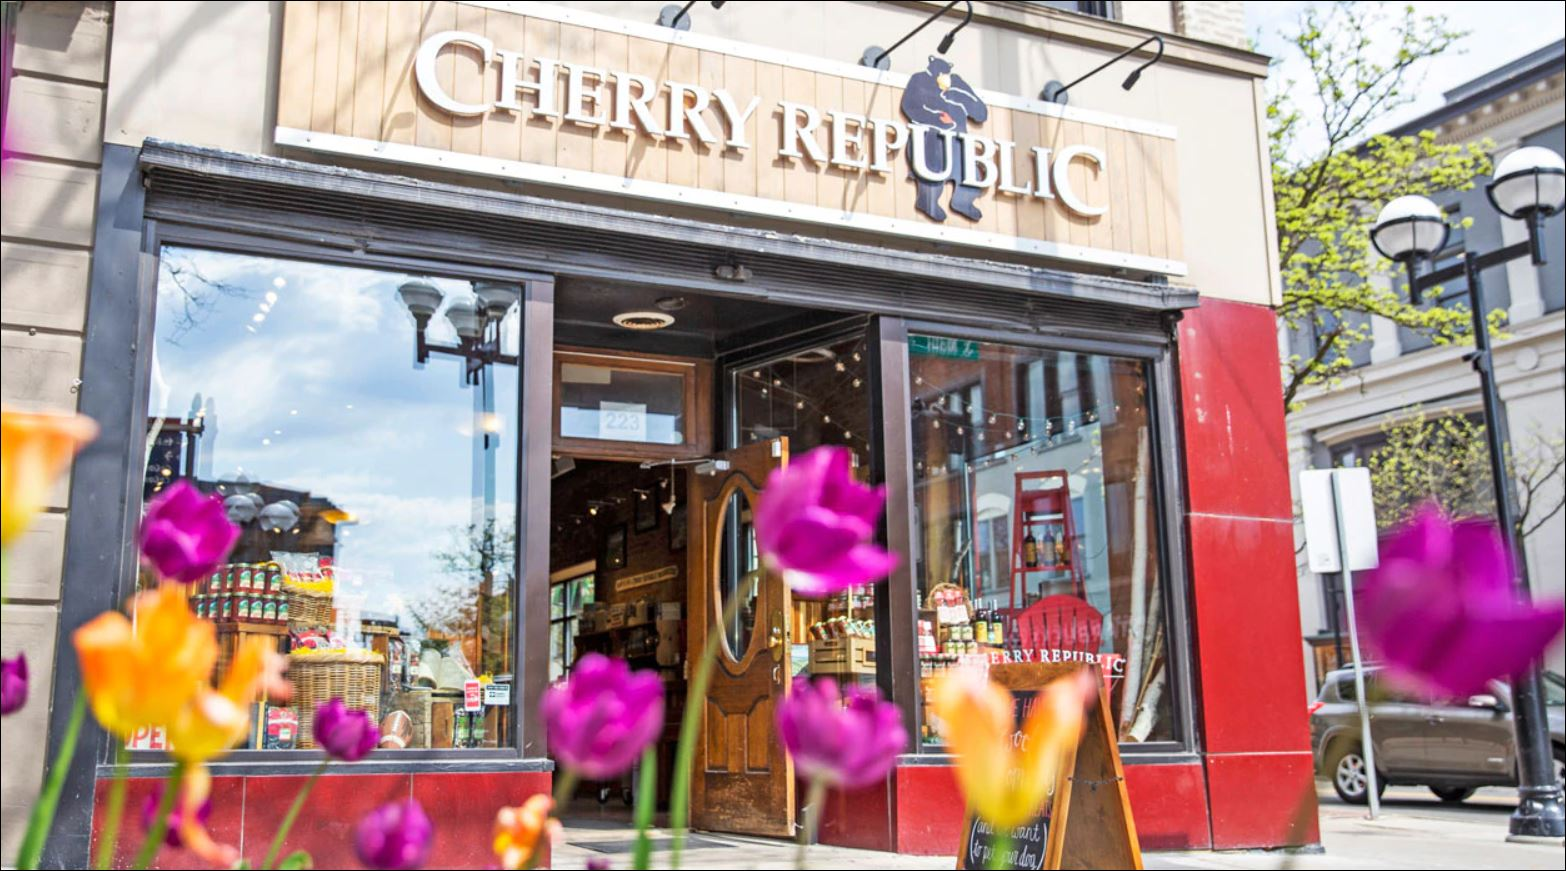 61306b359906d Cherryrepublic.com/survey – Cherry Republic Survey Founded by Bob Sutherland in 1989, the Cherry Republic selling a t-shirt from the trunk. Cherry Republic tries to give customers more satisfying services and products and to extend their business to the whole world. Cherry Republic always wants its customers to know how important it is for them to…